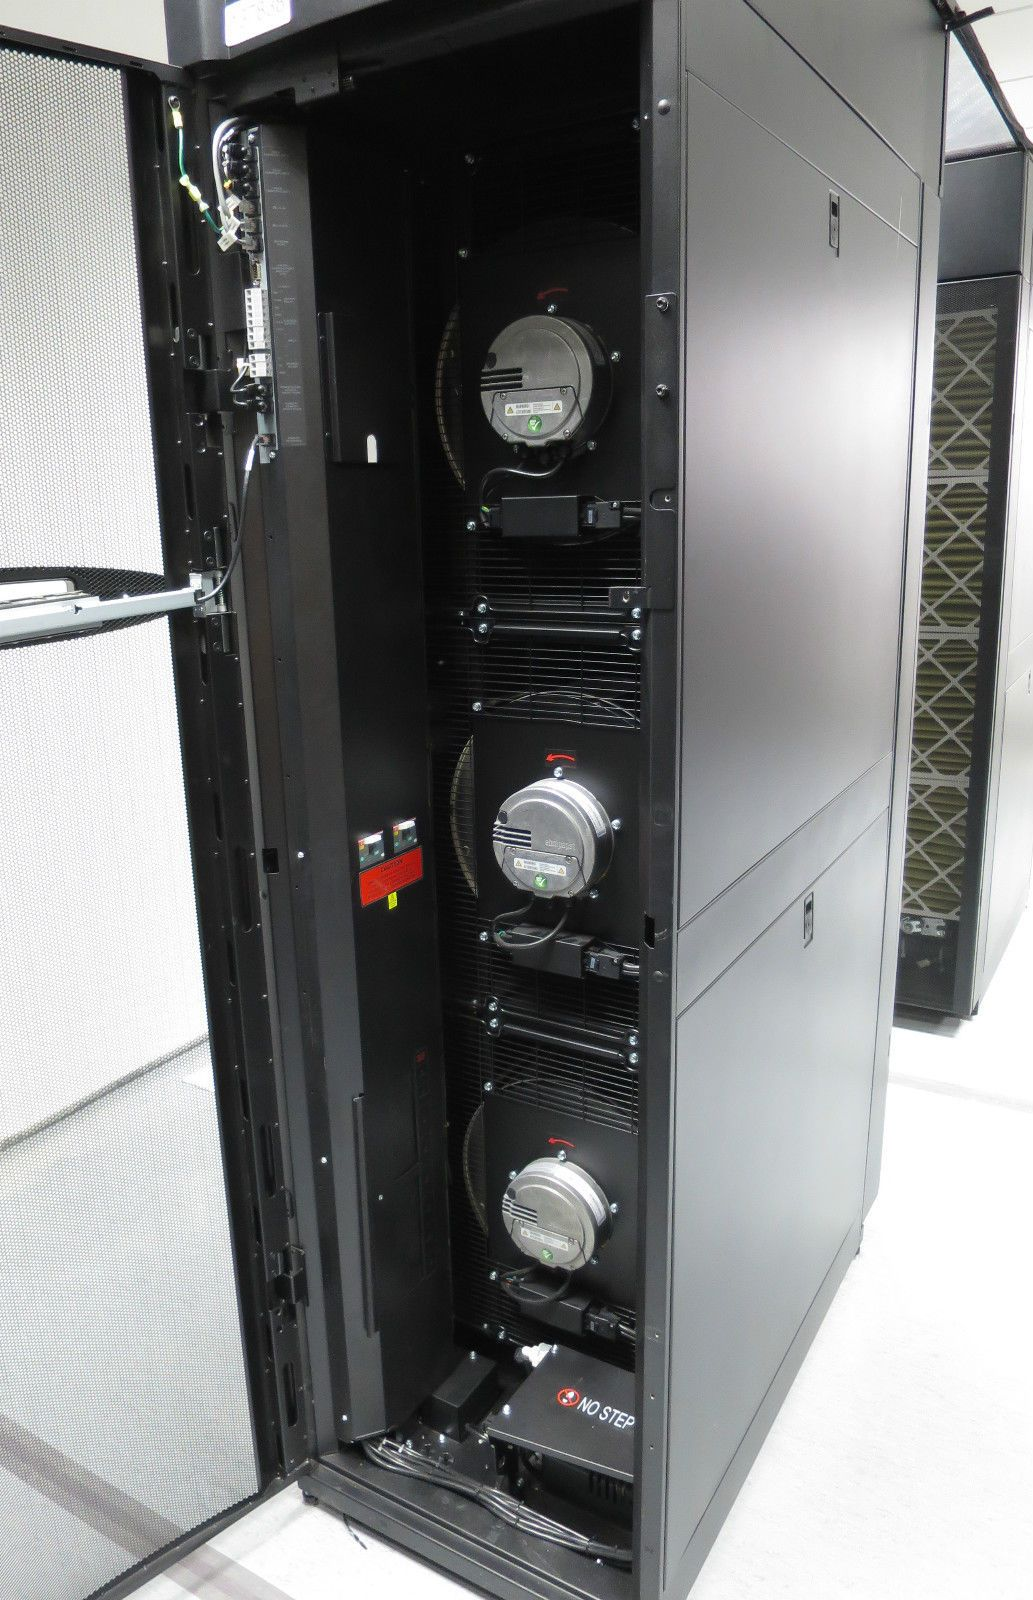 Apc Acra502 Inrow Rc 600mm Chilled Water Server Room Rack